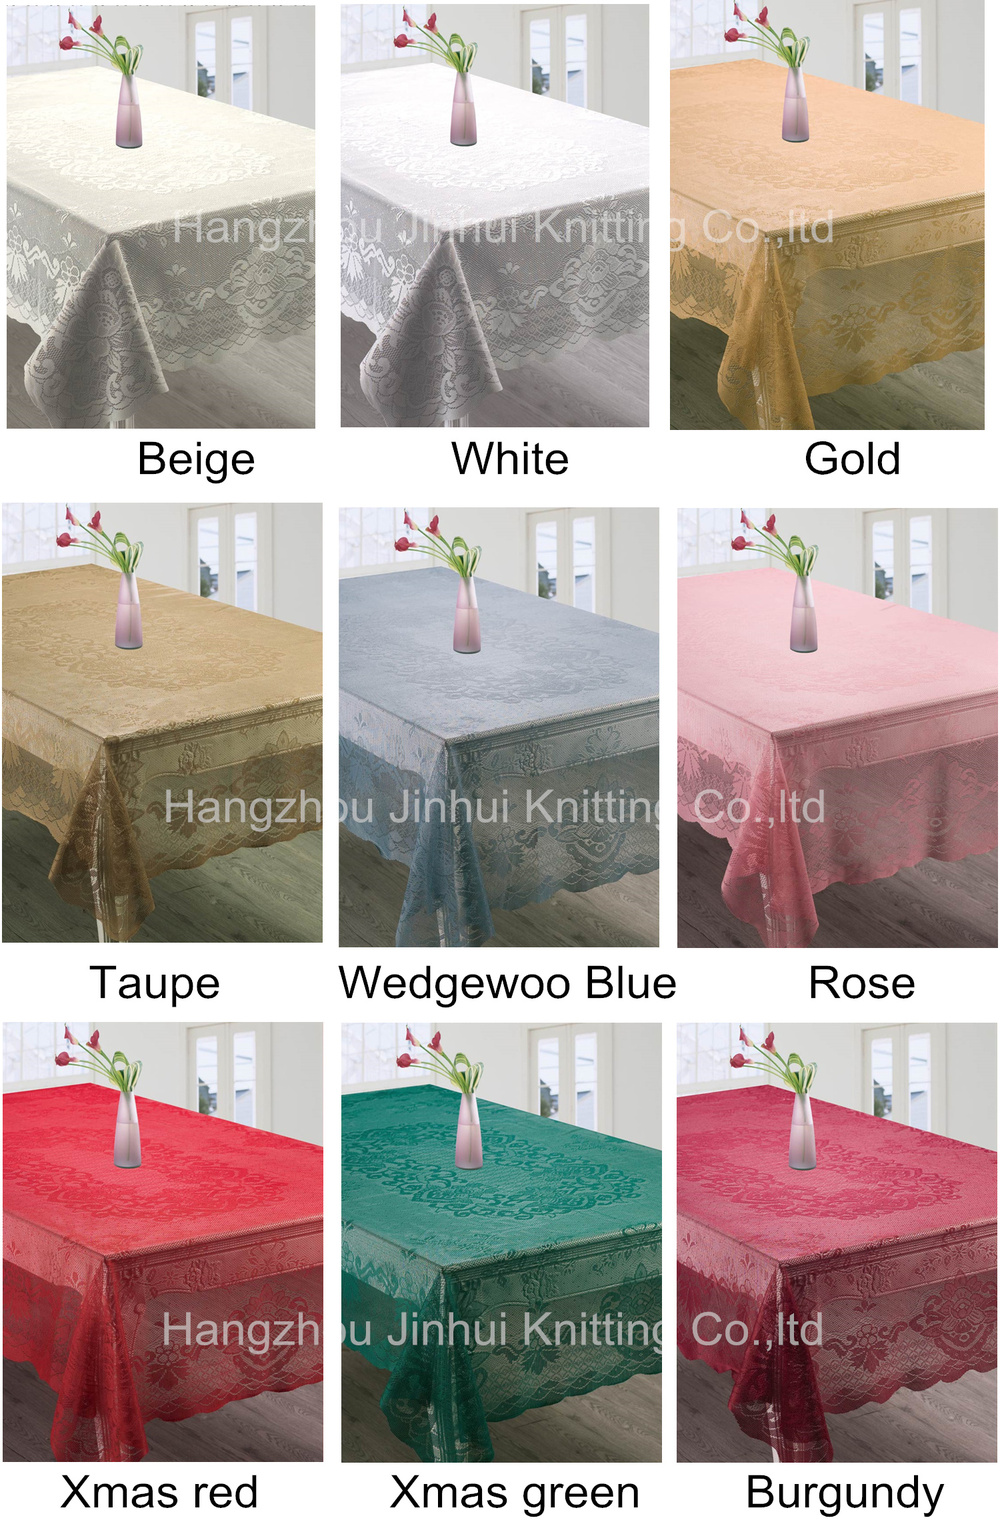 Xmas holiday lace tablecloths/ Christmas table cloth / table cloth